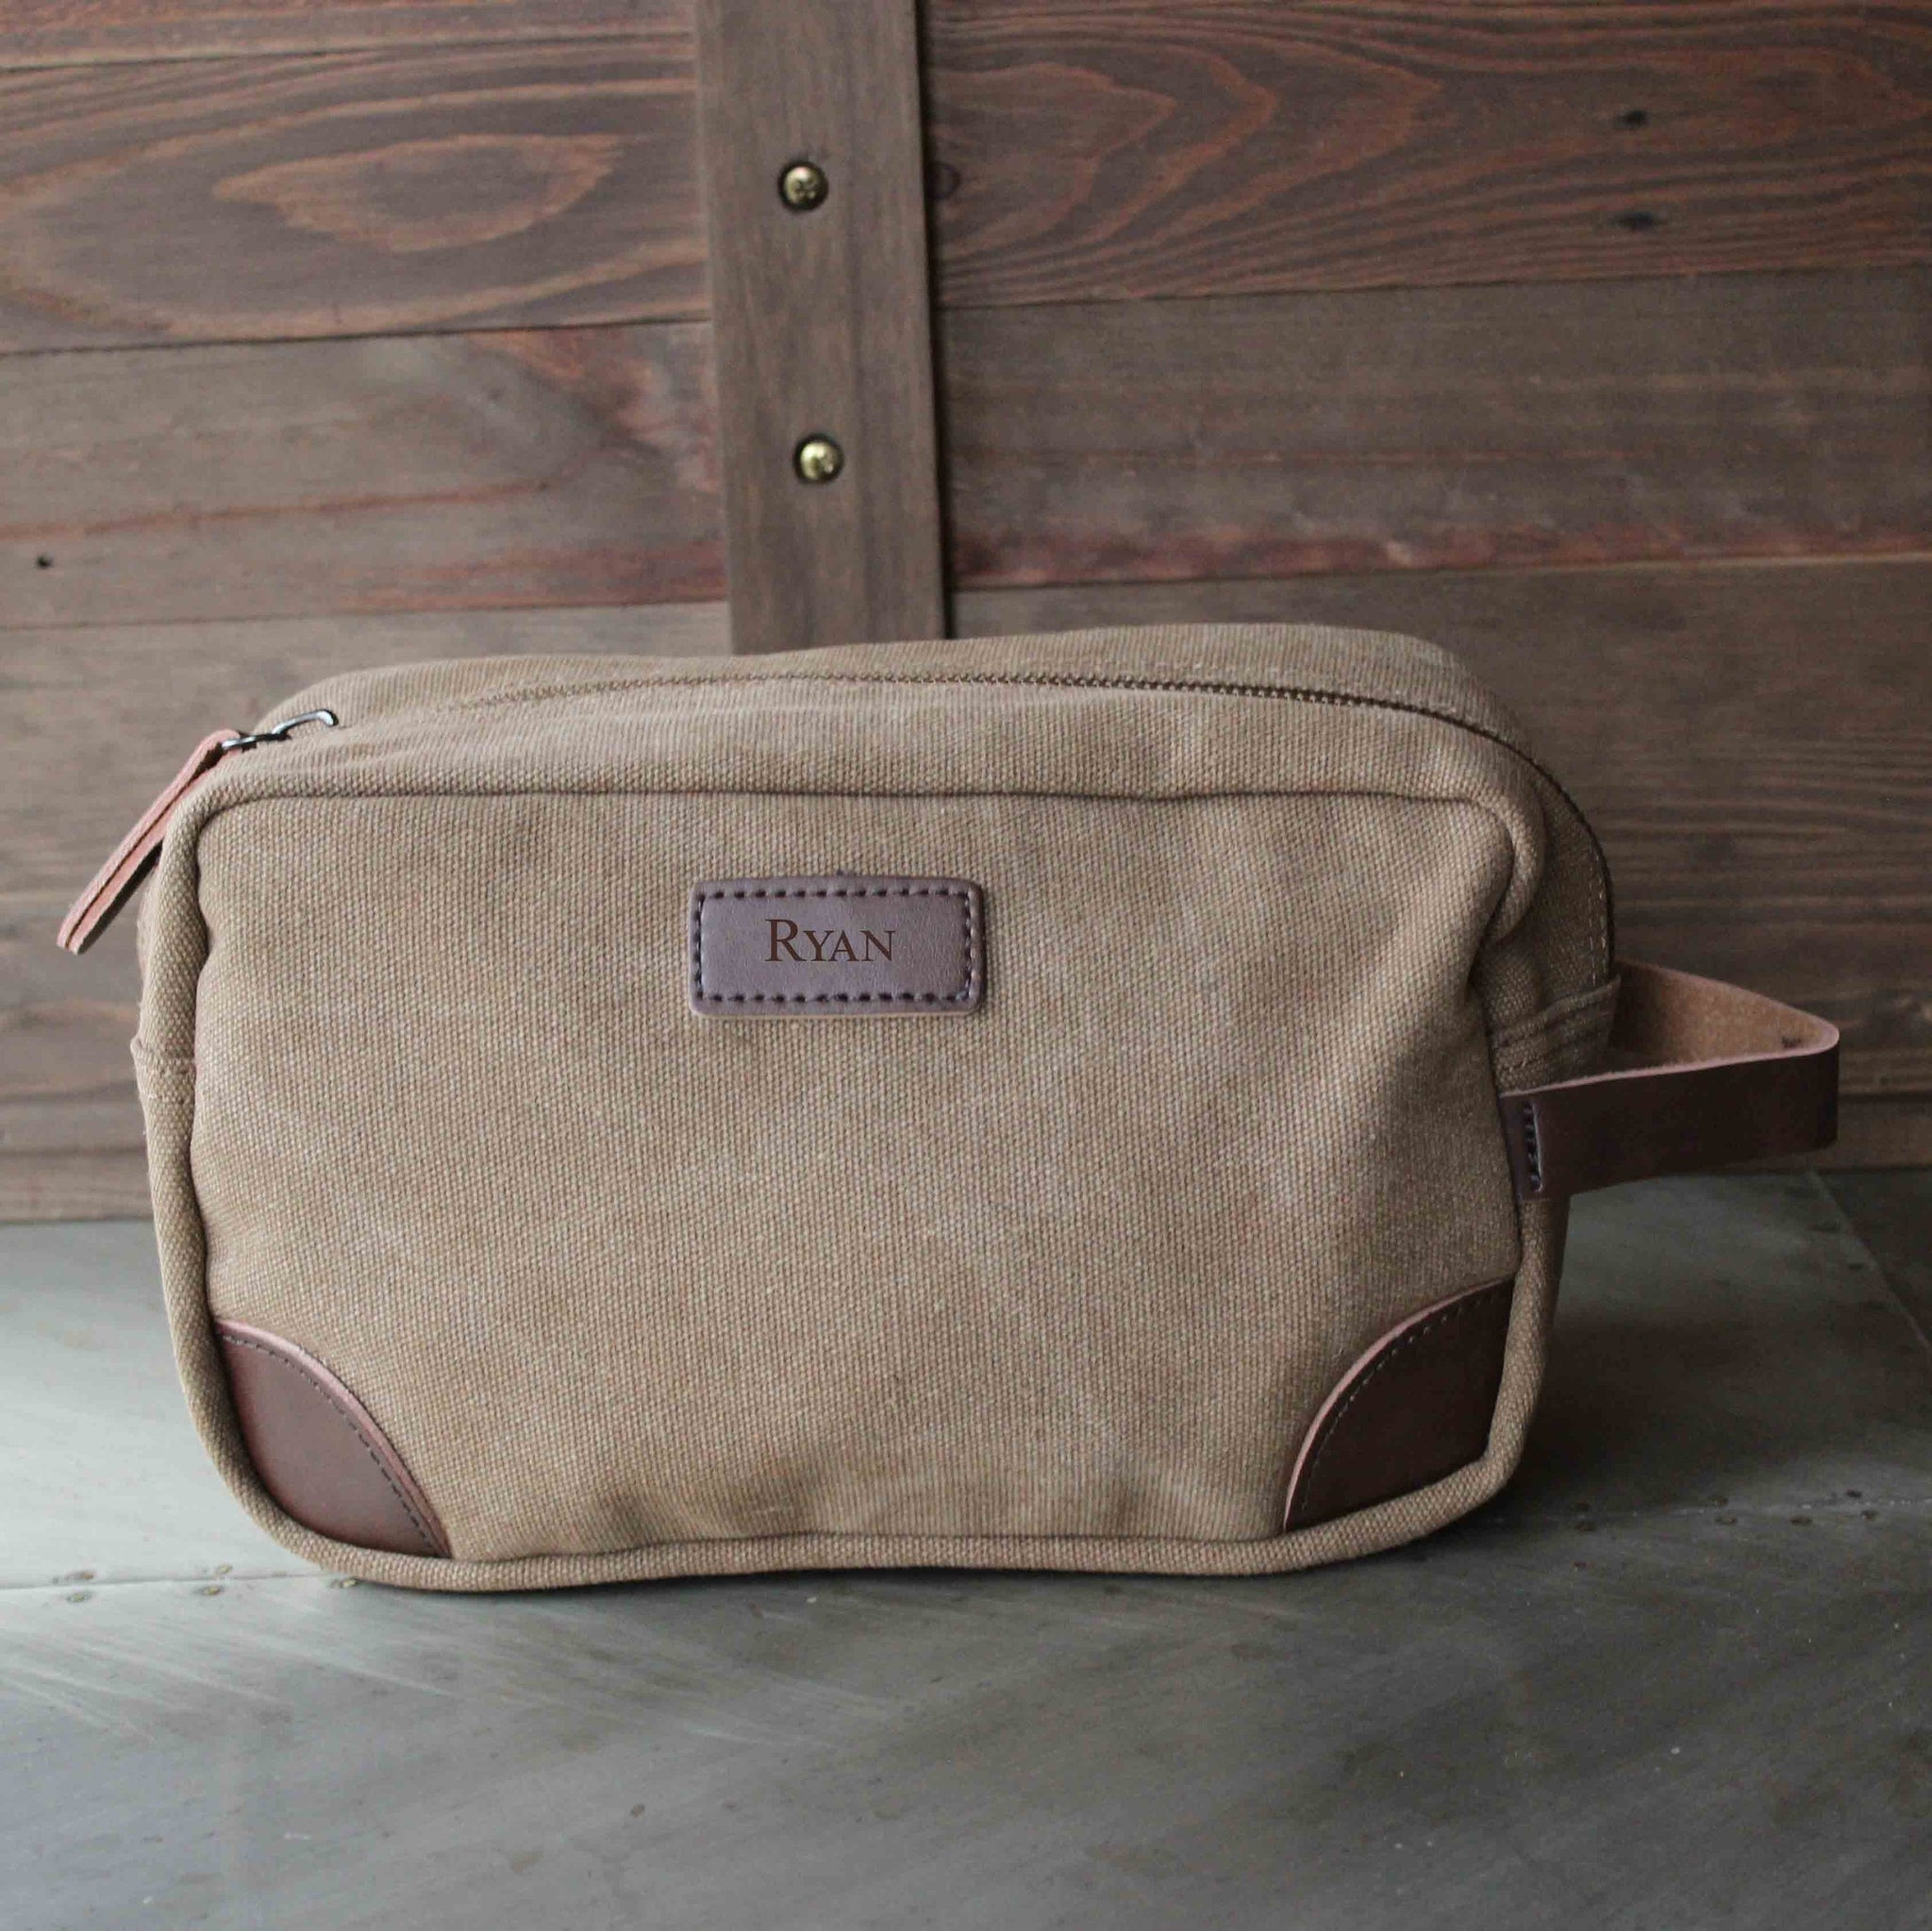 7055267d2e The Teton Groomsmen s Travel Size Toiletry Bag in Dark Brown - Personalized  Canvas Dopp Kit with Genuine Leather